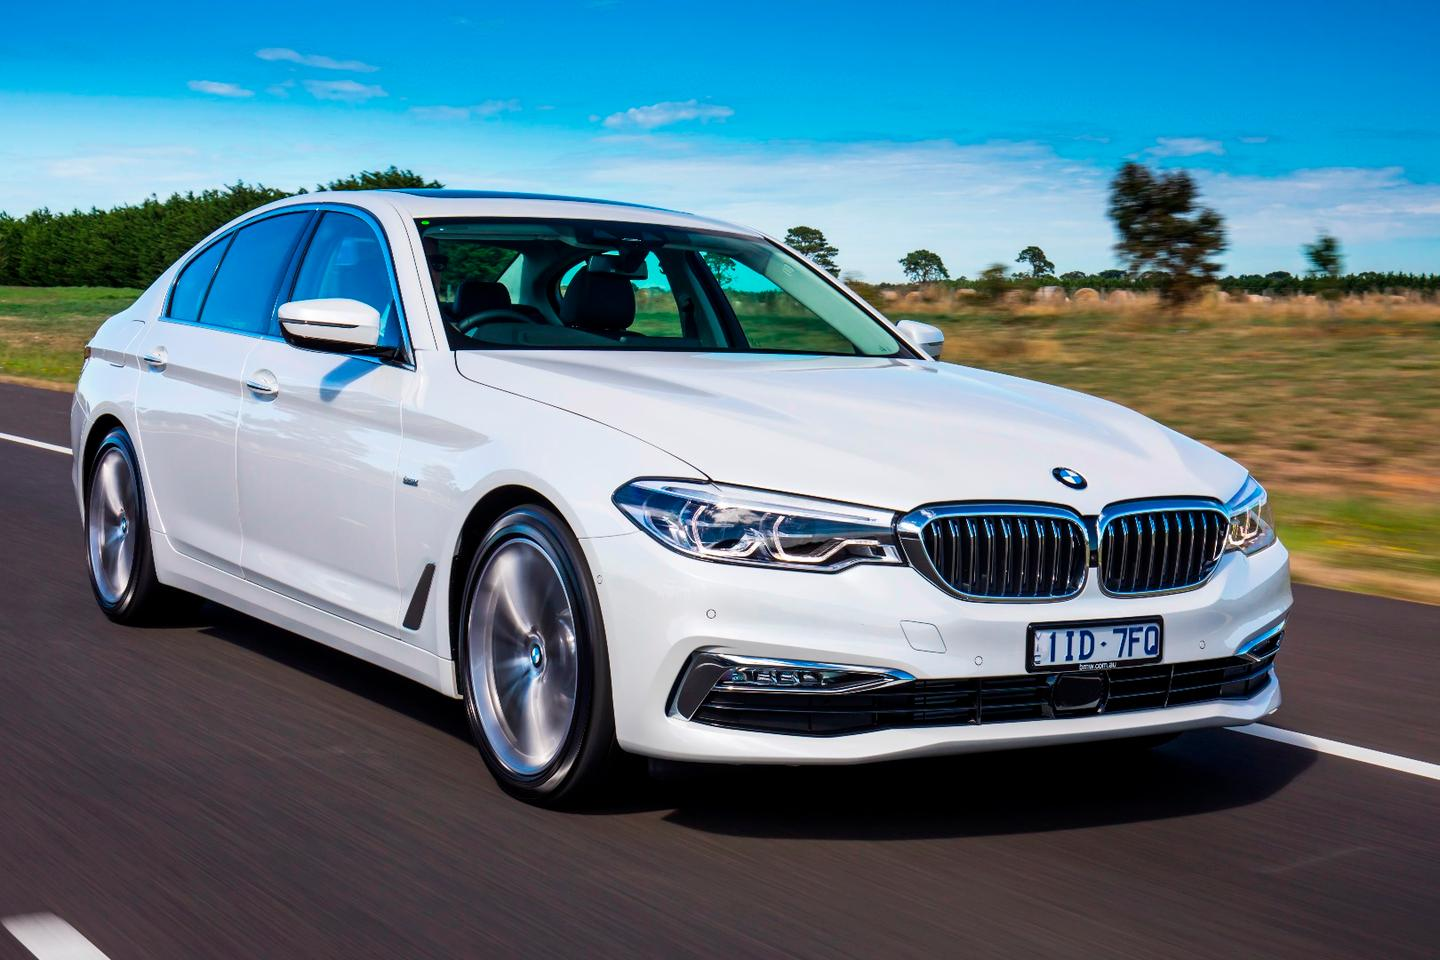 The BMW 5 Series 520 d offers silky smooth driving